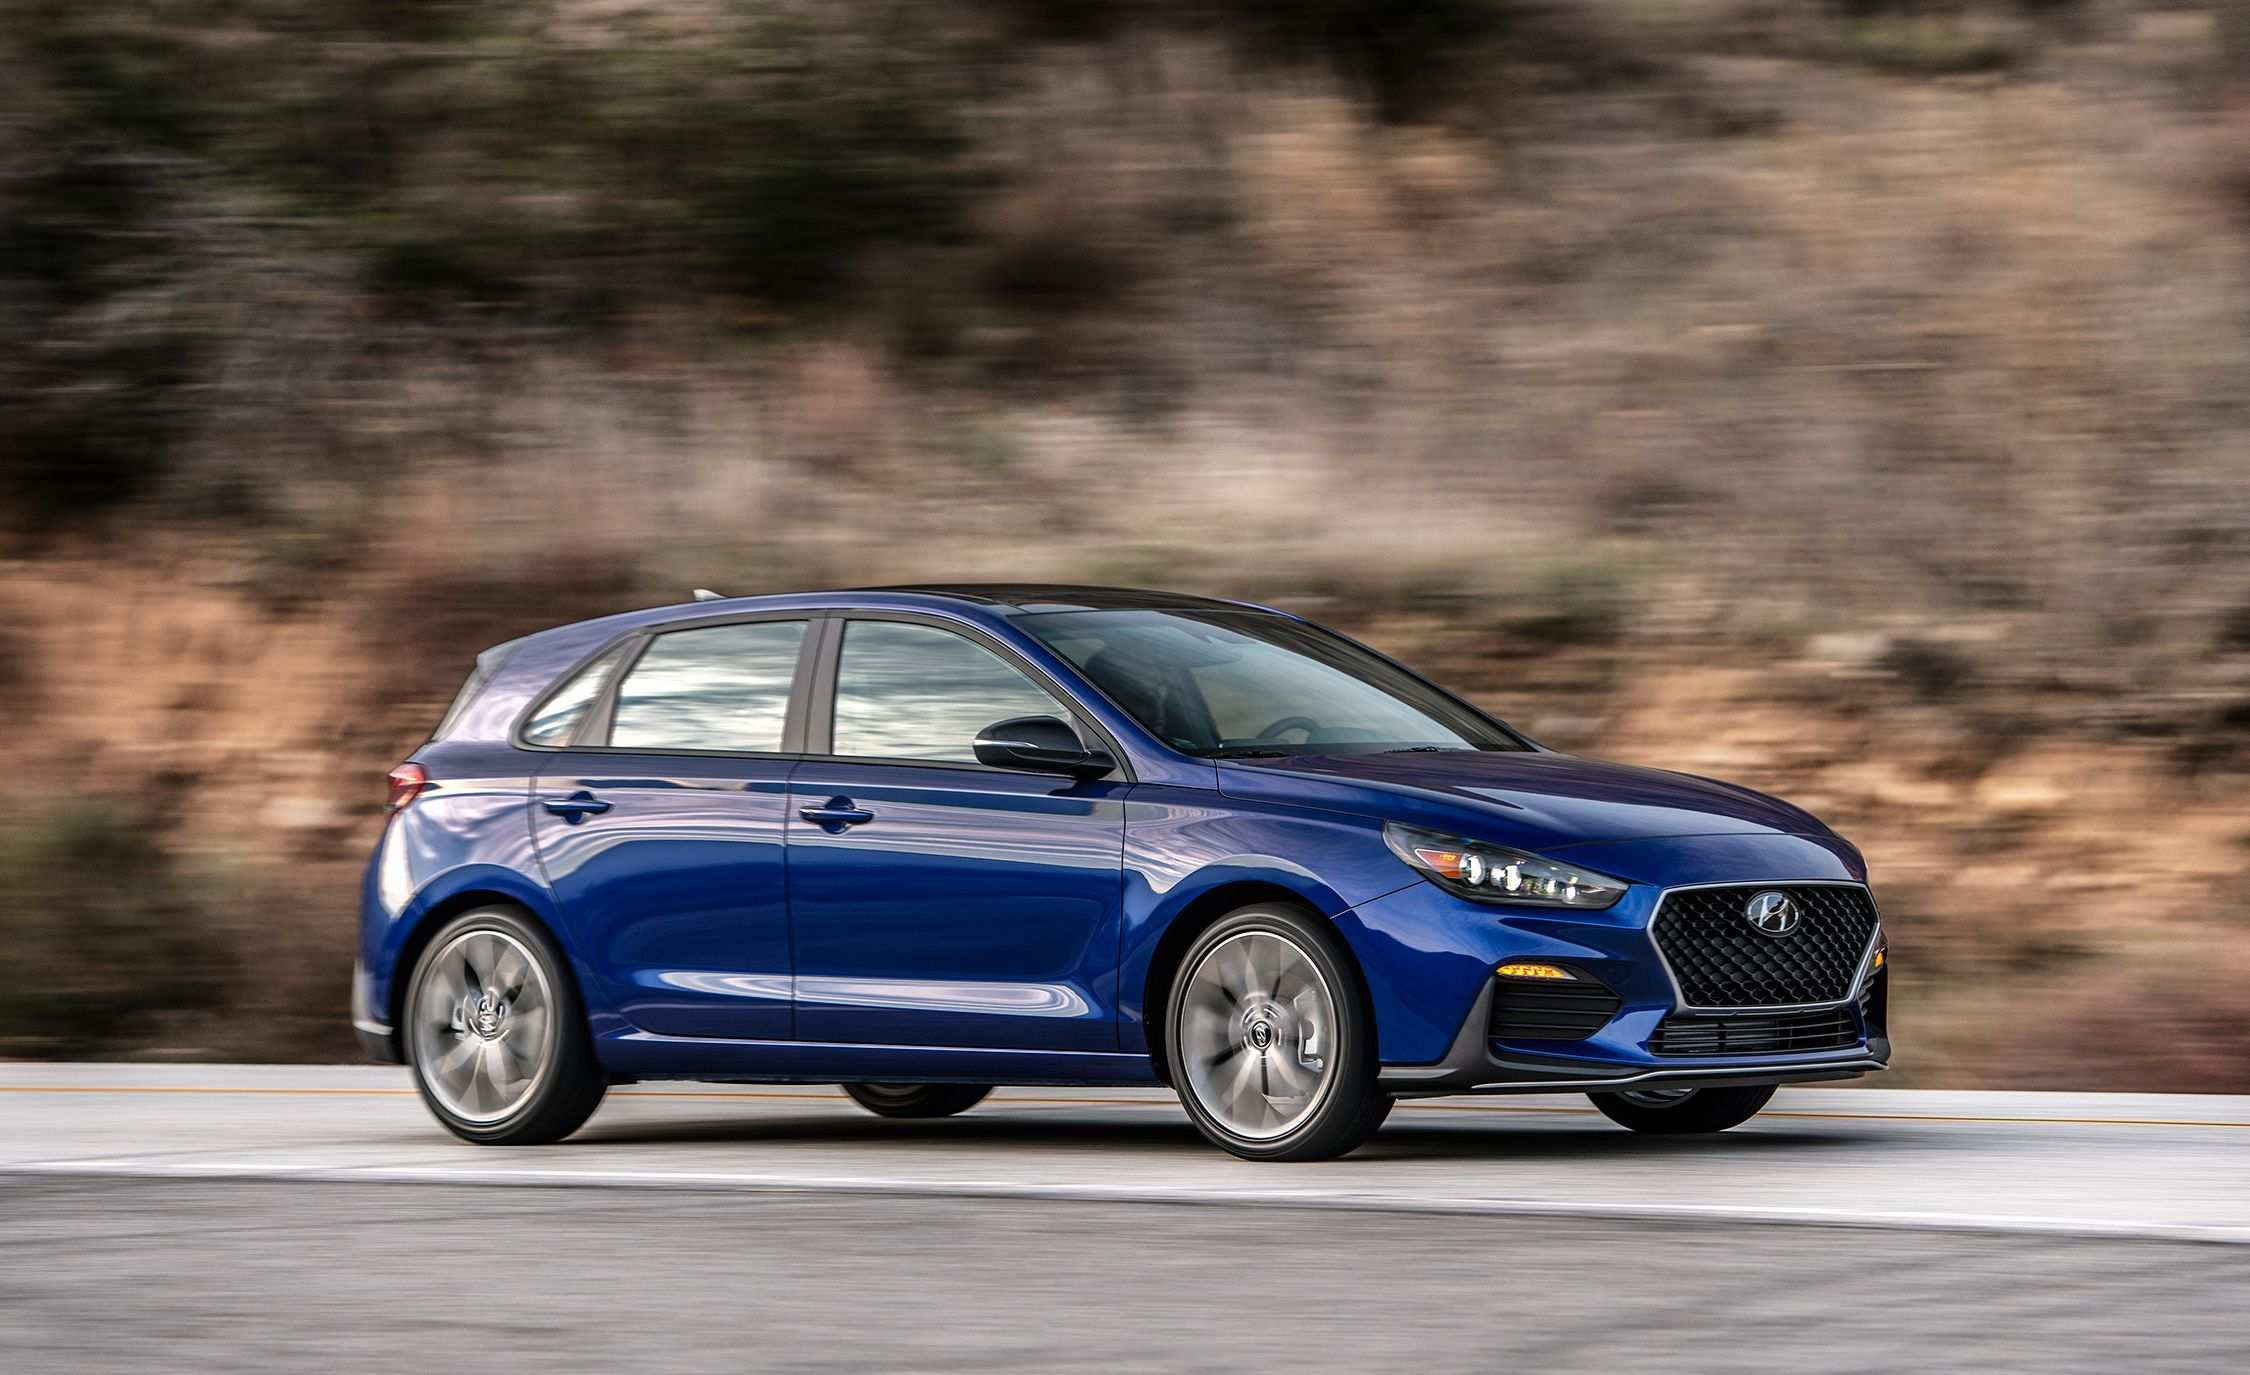 77 Great 2019 Hyundai Elantra Gt Spesification with 2019 Hyundai Elantra Gt